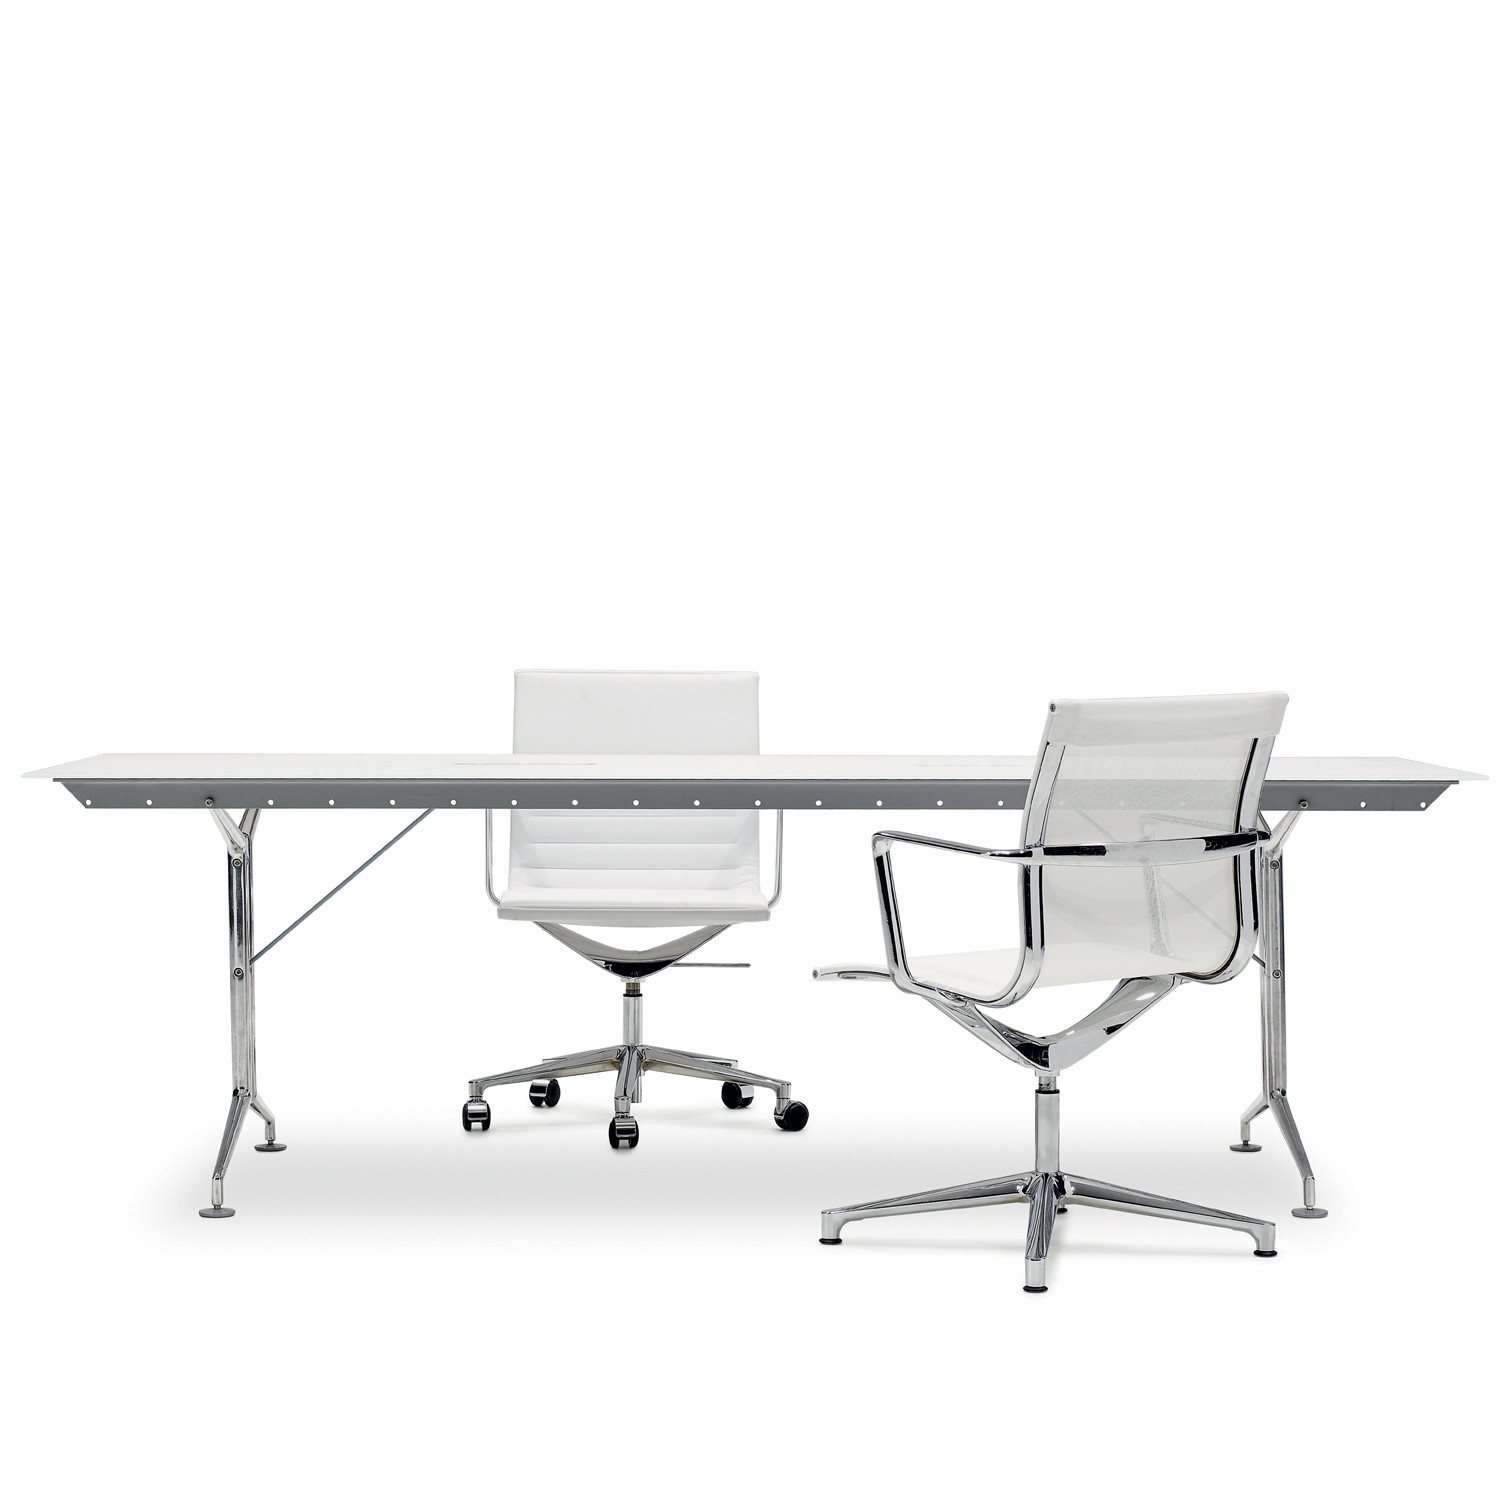 Una Chairs for office meetings